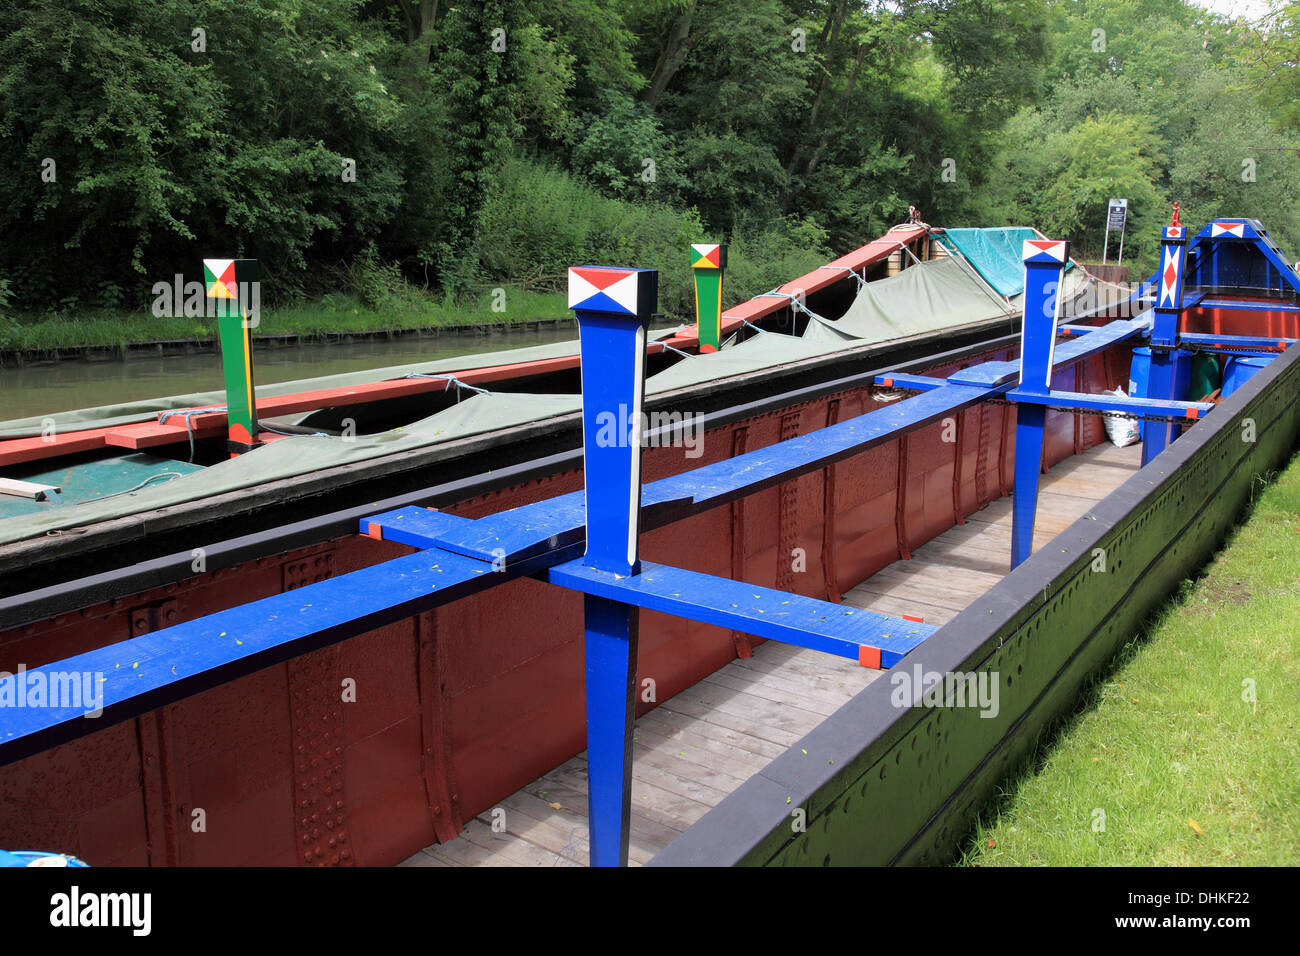 Freight carrying narrowboat, empty of cargo, moored on the Grand Union Canal at Stoke Bruerne - Stock Image